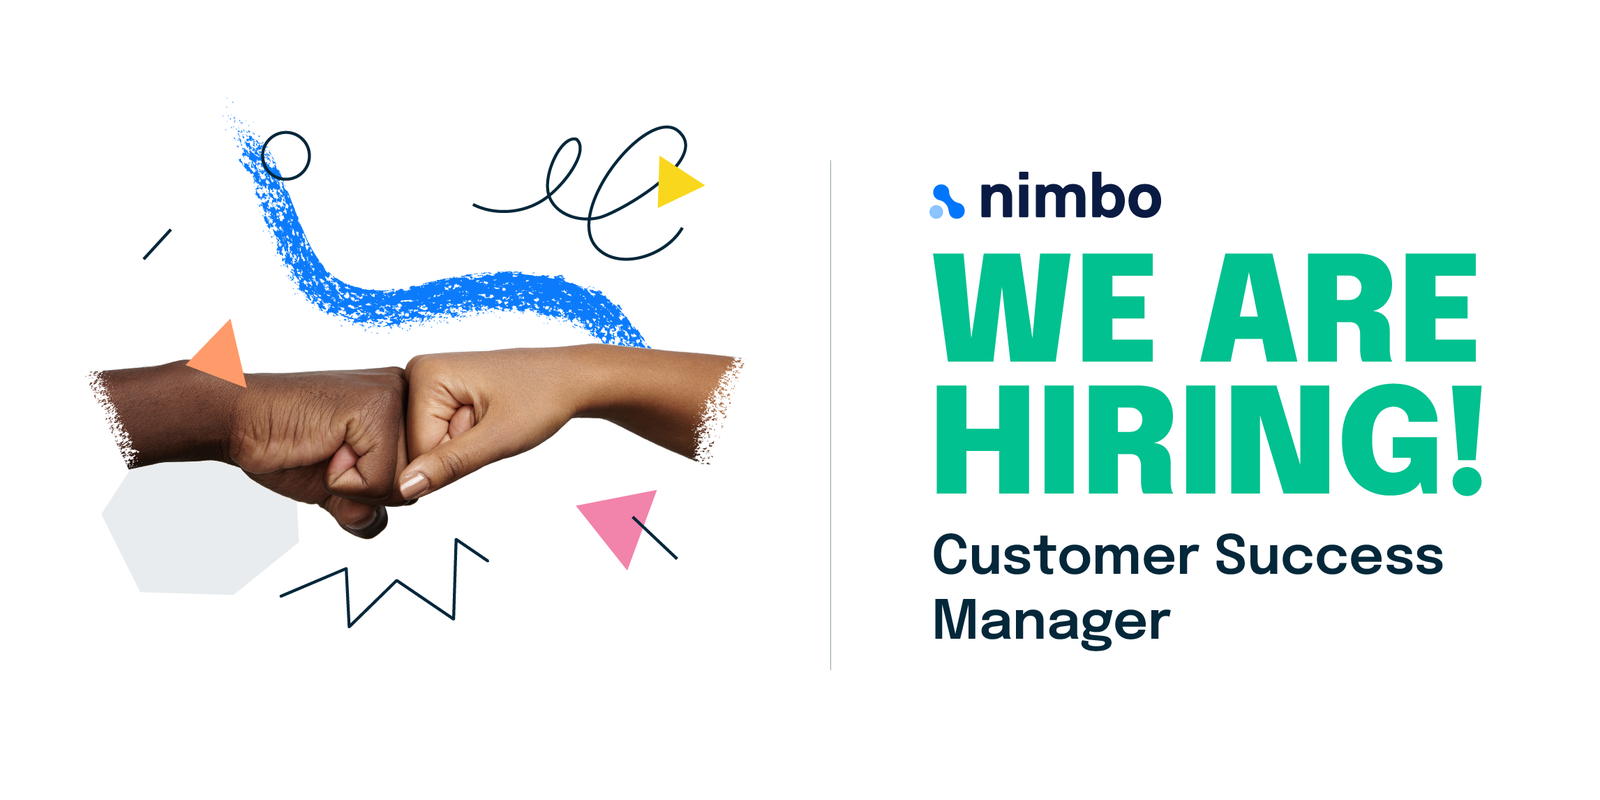 nimbo customer success manager